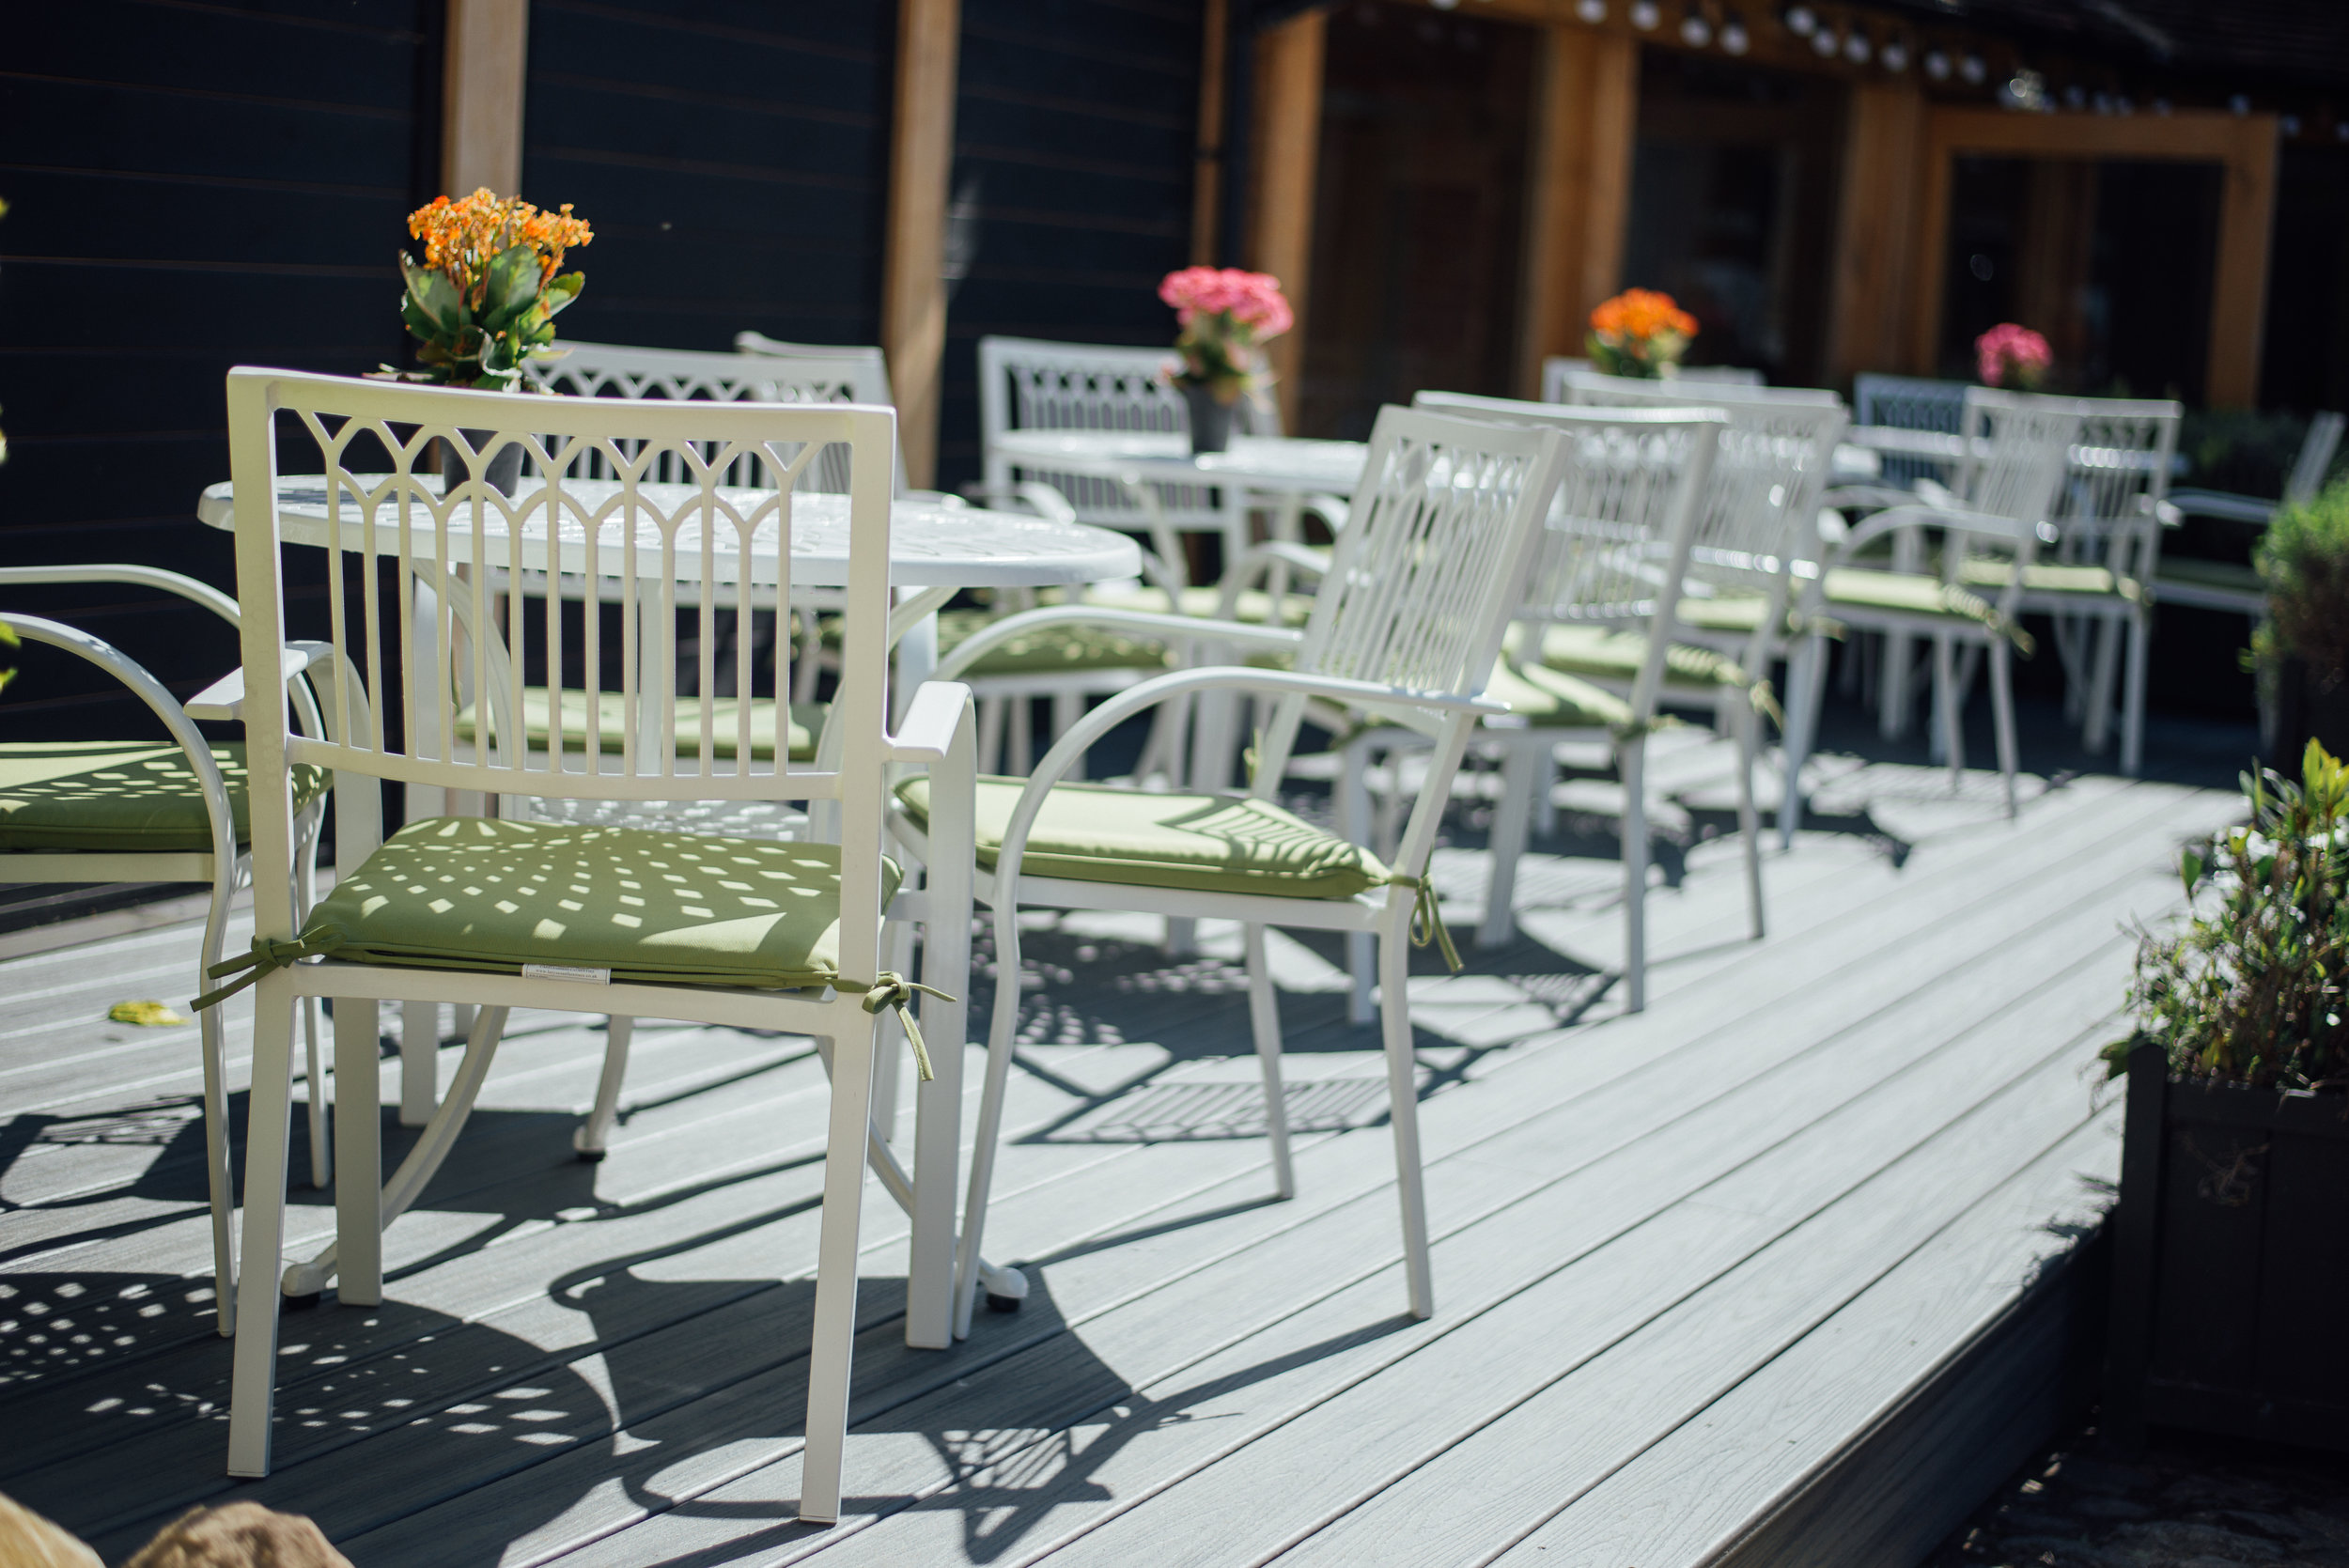 Alfresco dining at The Crown & Thistle in Abingdon